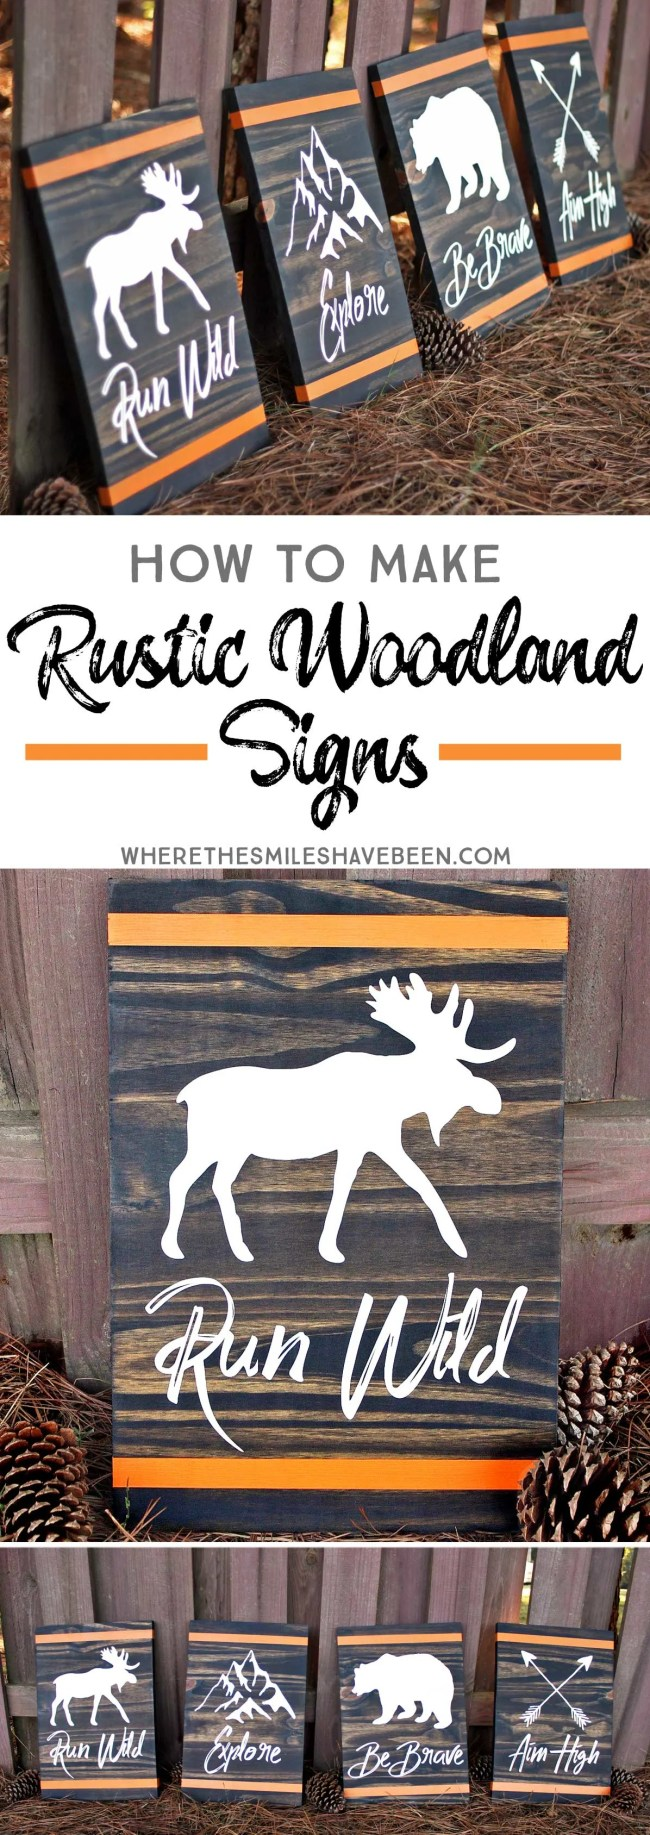 How to Make Rustic Woodland Signs   Where The Smiles Have Been